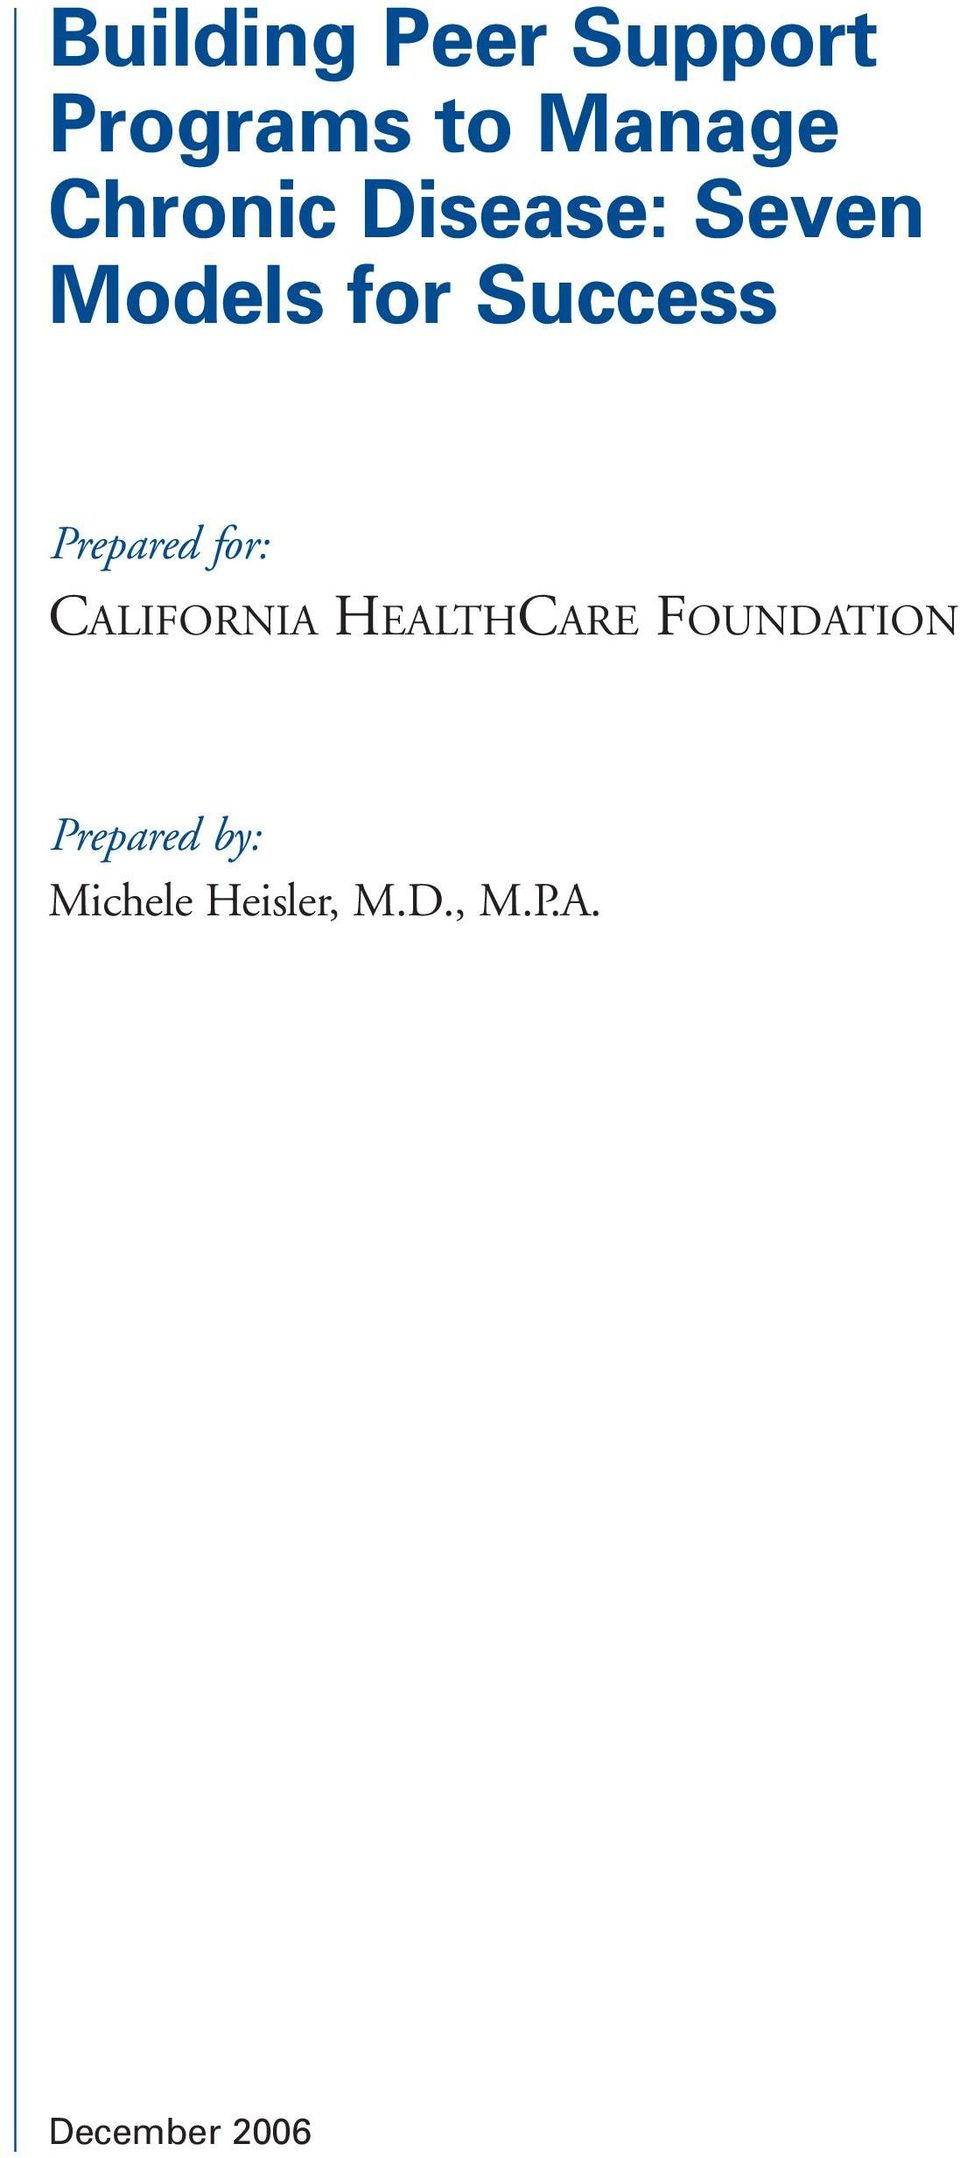 Prepared for: CALIFORNIA HEALTHCARE FOUNDATION